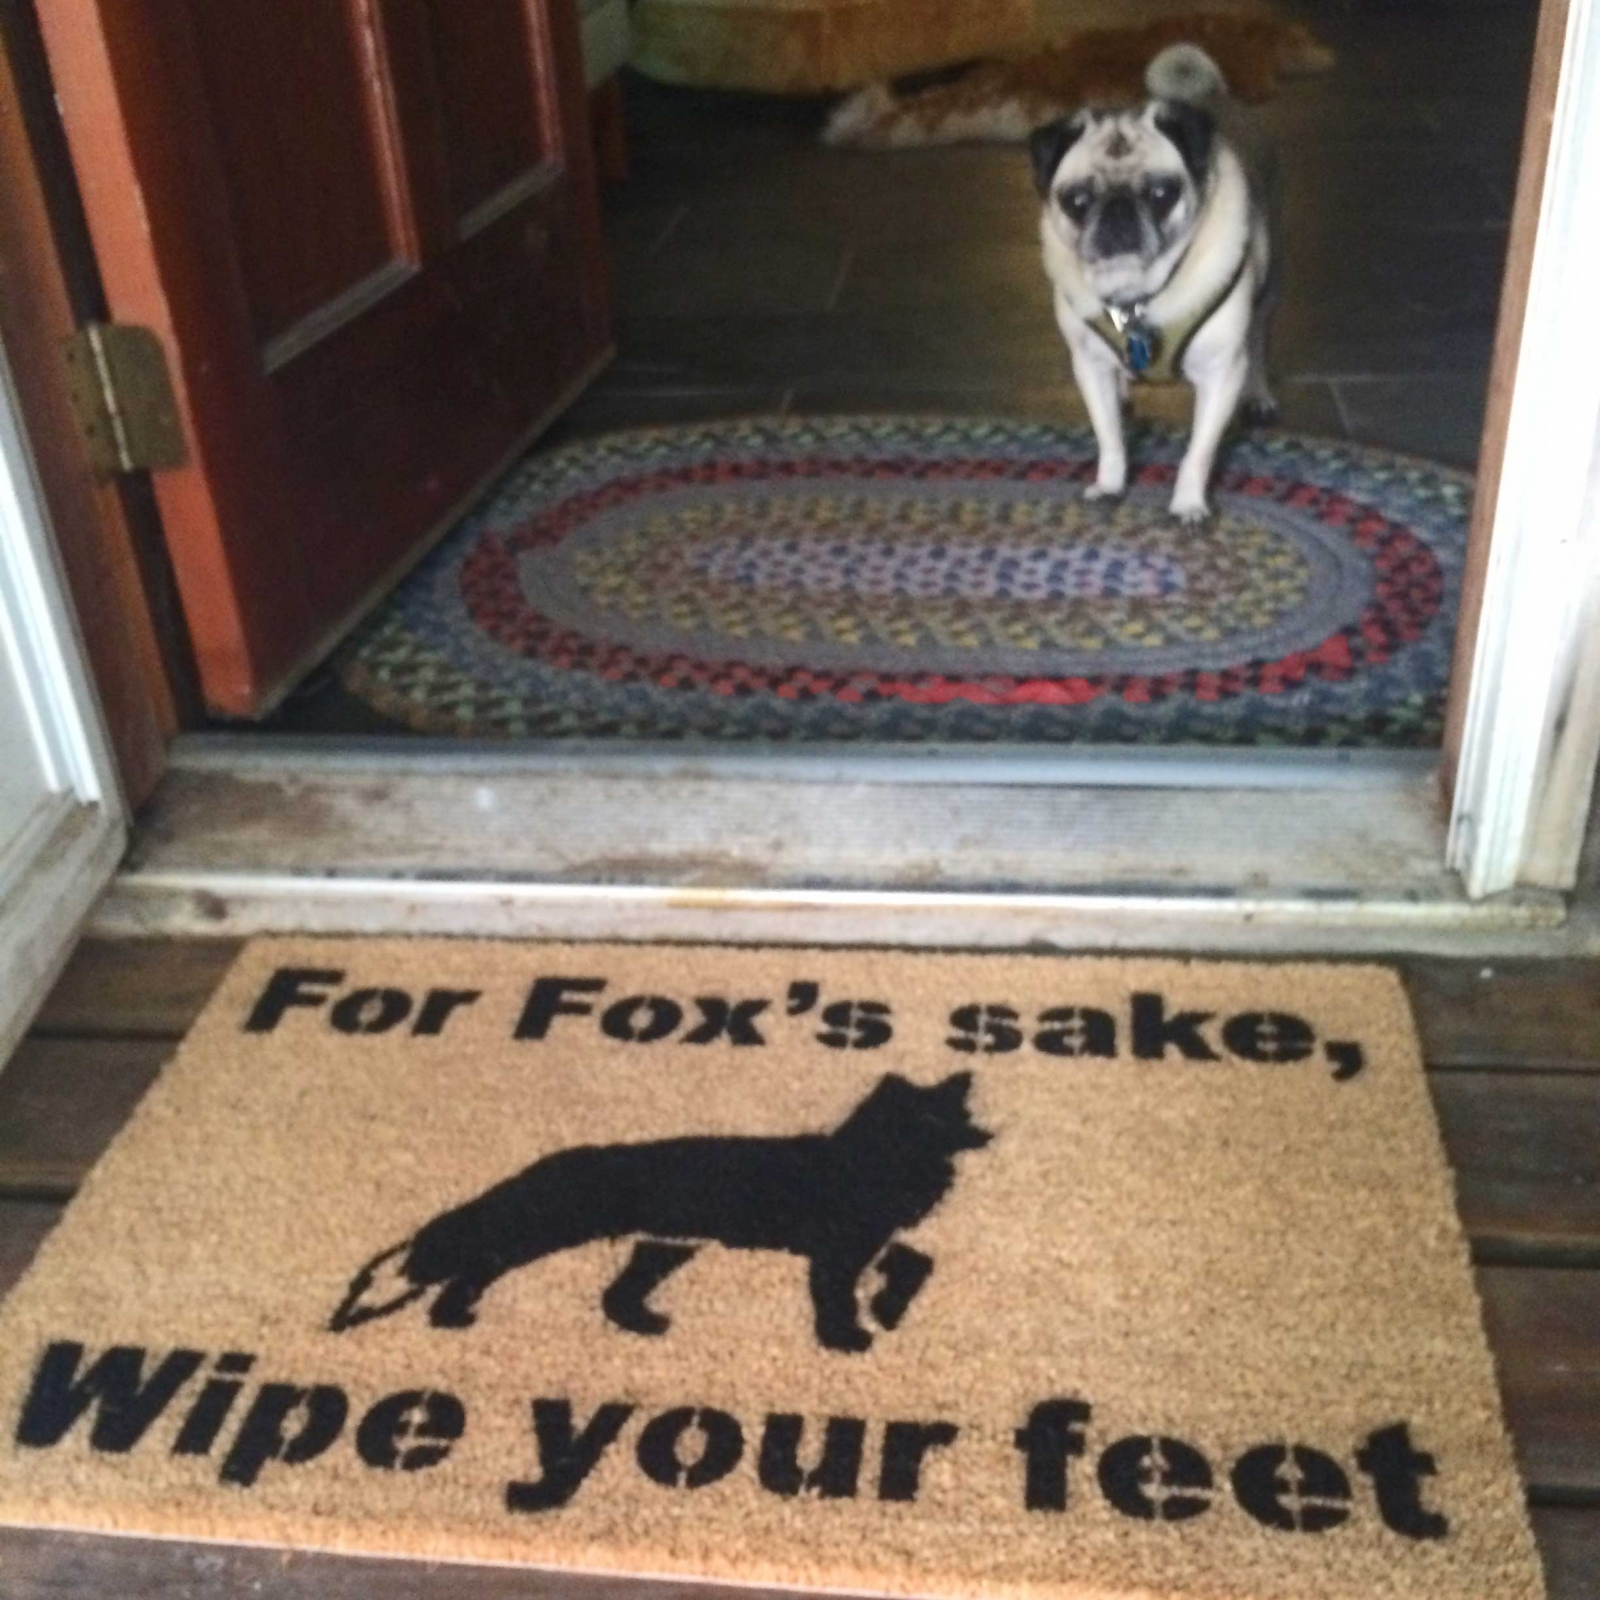 For Fox S Sake Wipe Your Feet Damn Good Doormat Damn